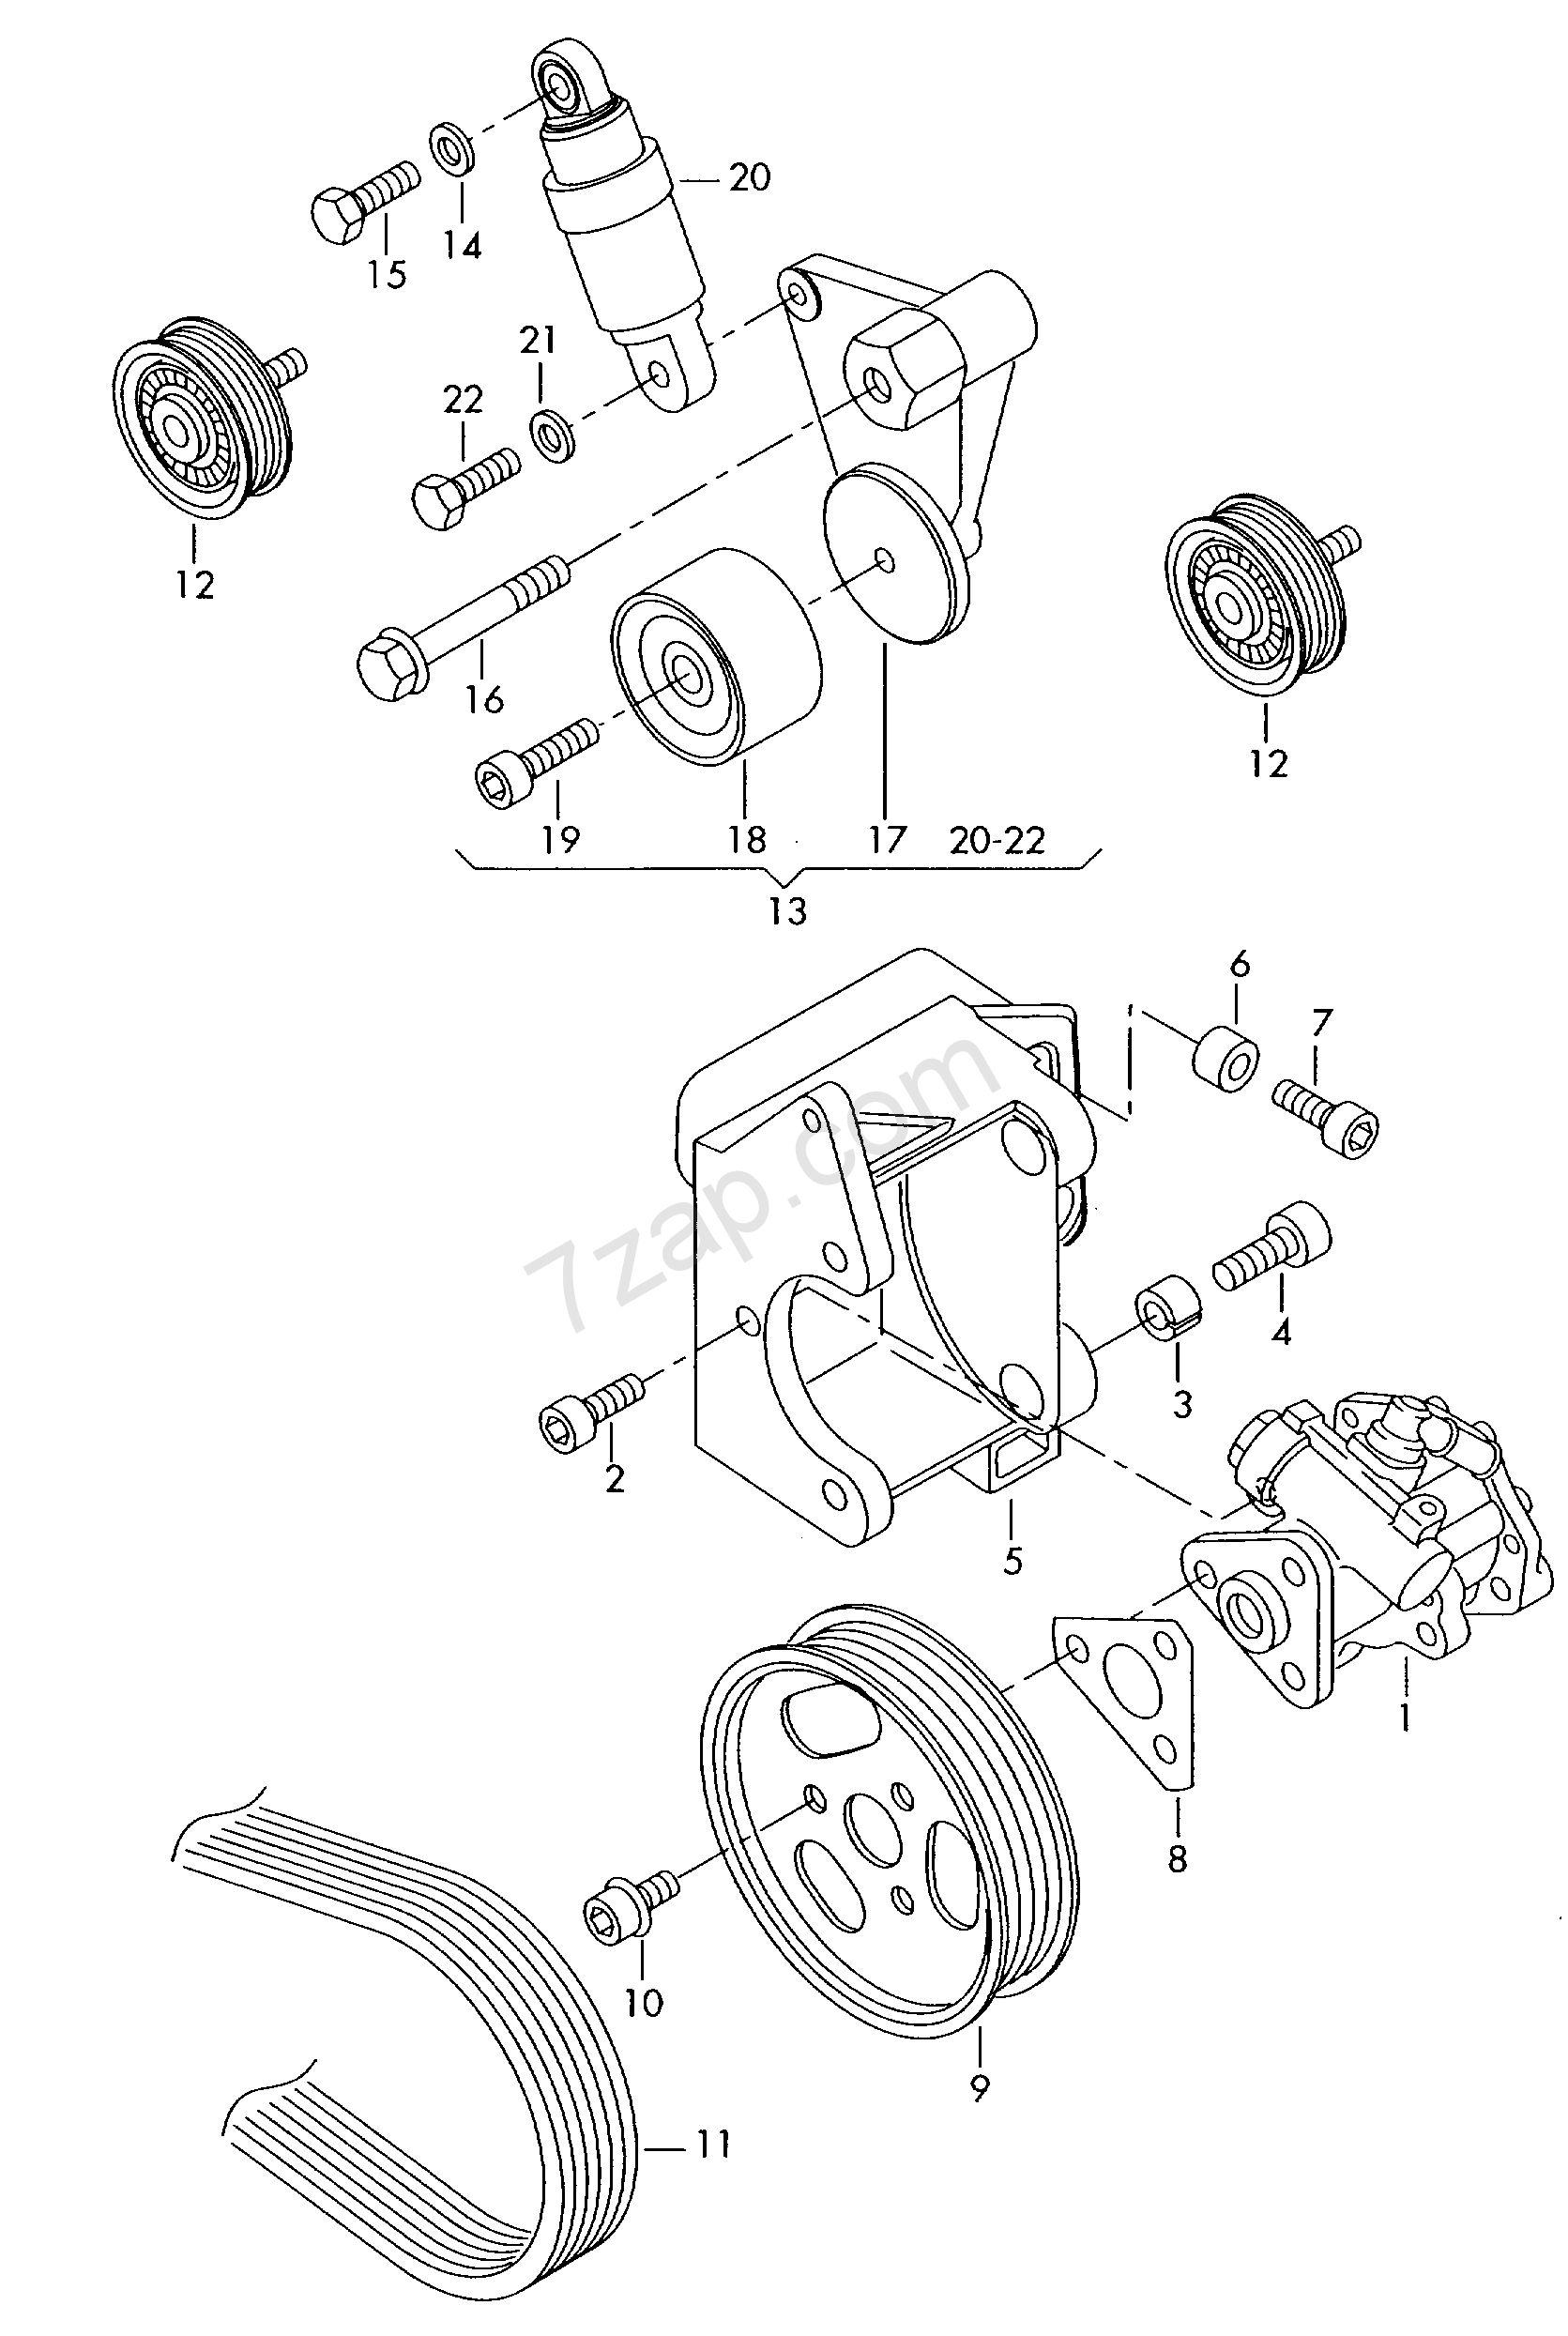 Vane Pump Audi A8 2010 Year Europa 145090 Engine Diagram A8a8